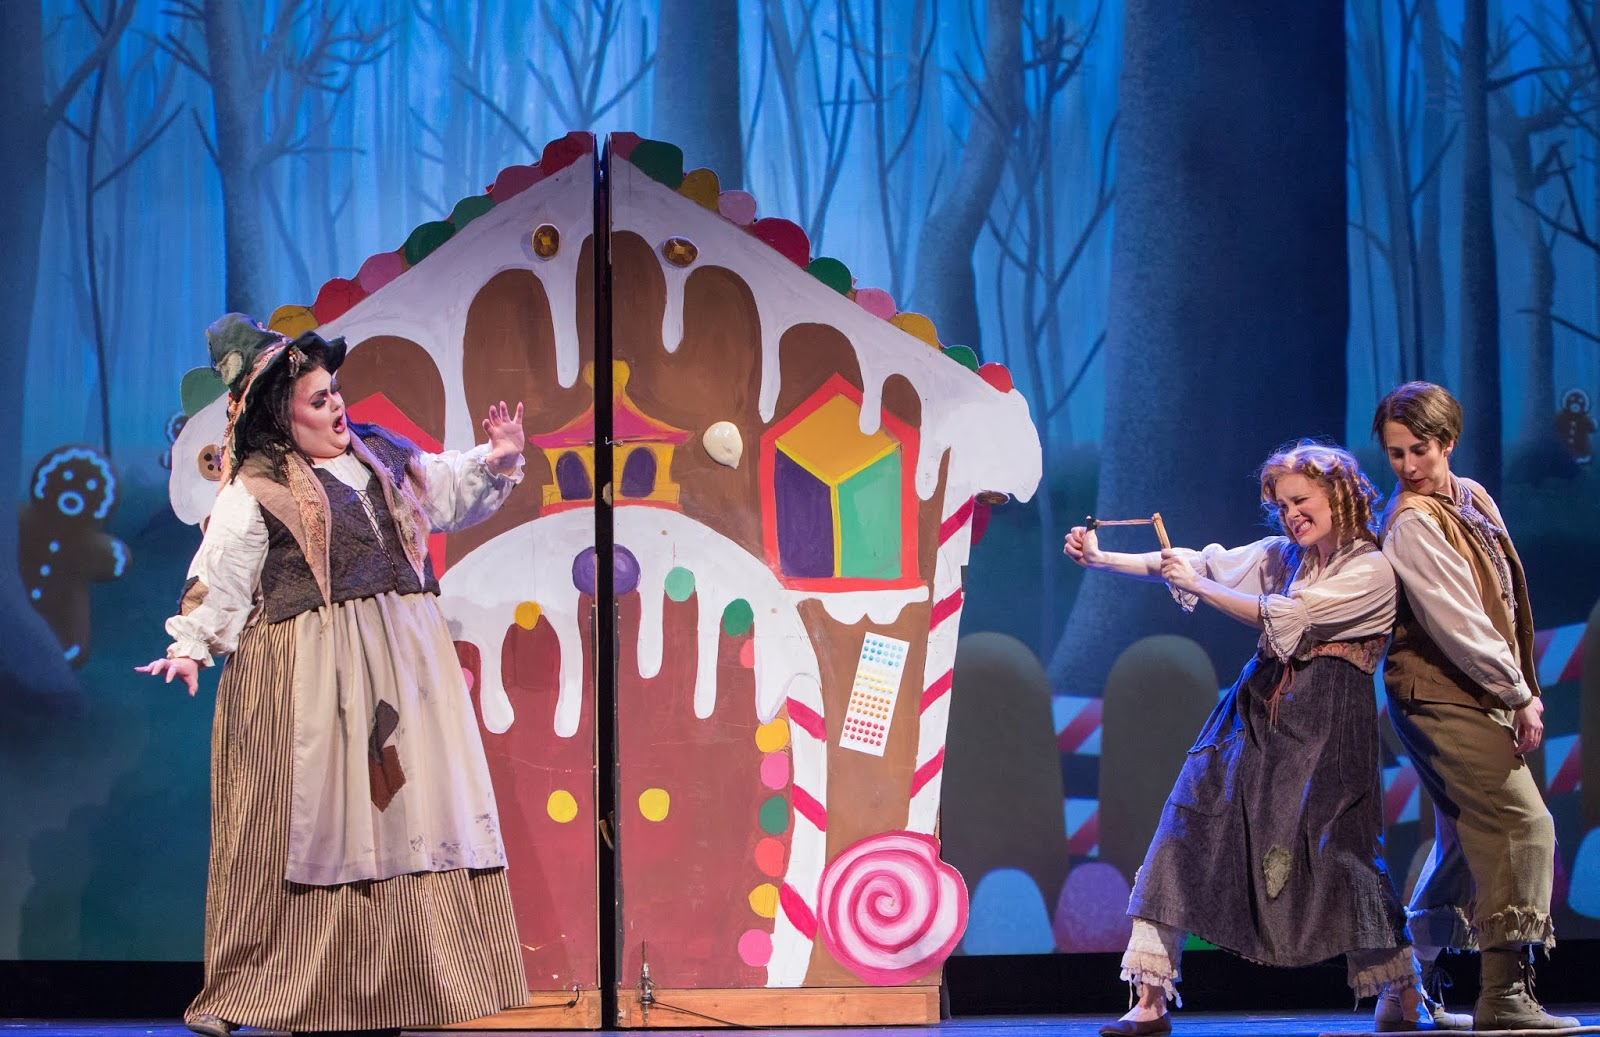 IN PERFORMANCE: (from left to right) mezzo-soprano GRETCHEN KRUPP as Die Knusperhexe, soprano JOANN MARTINSON DAVIS as Gretel, and mezzo-soprano STEPHANIE FOLEY DAVIS as Hänsel in Greensboro Opera's March 2019 production of Engelbert Humperdinck's HÄNSEL UND GRETEL [Photograph © by VanderVeen Photographers]